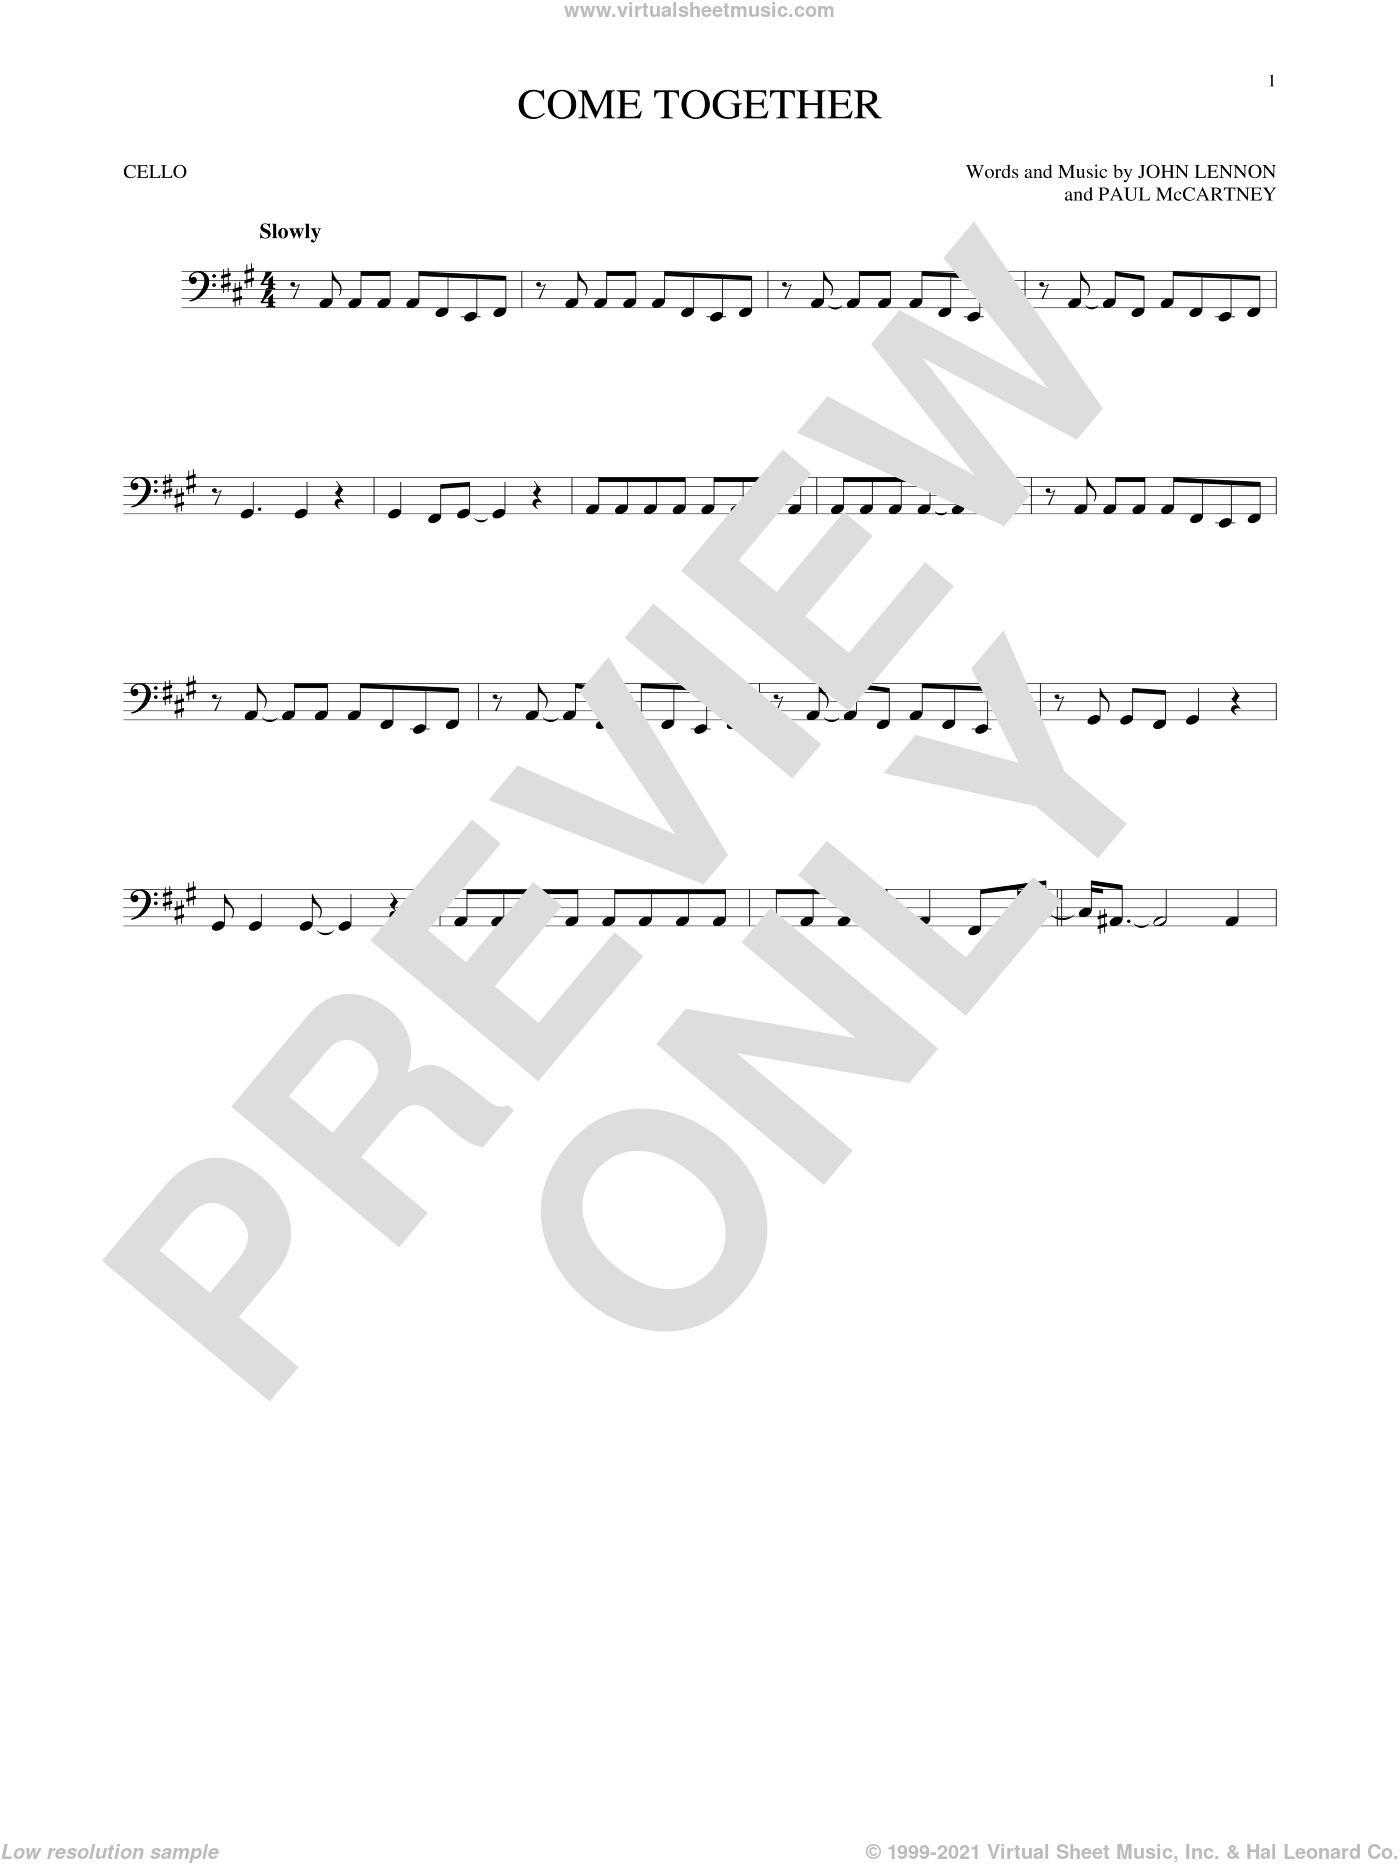 Come Together sheet music for cello solo by The Beatles, John Lennon and Paul McCartney, intermediate skill level